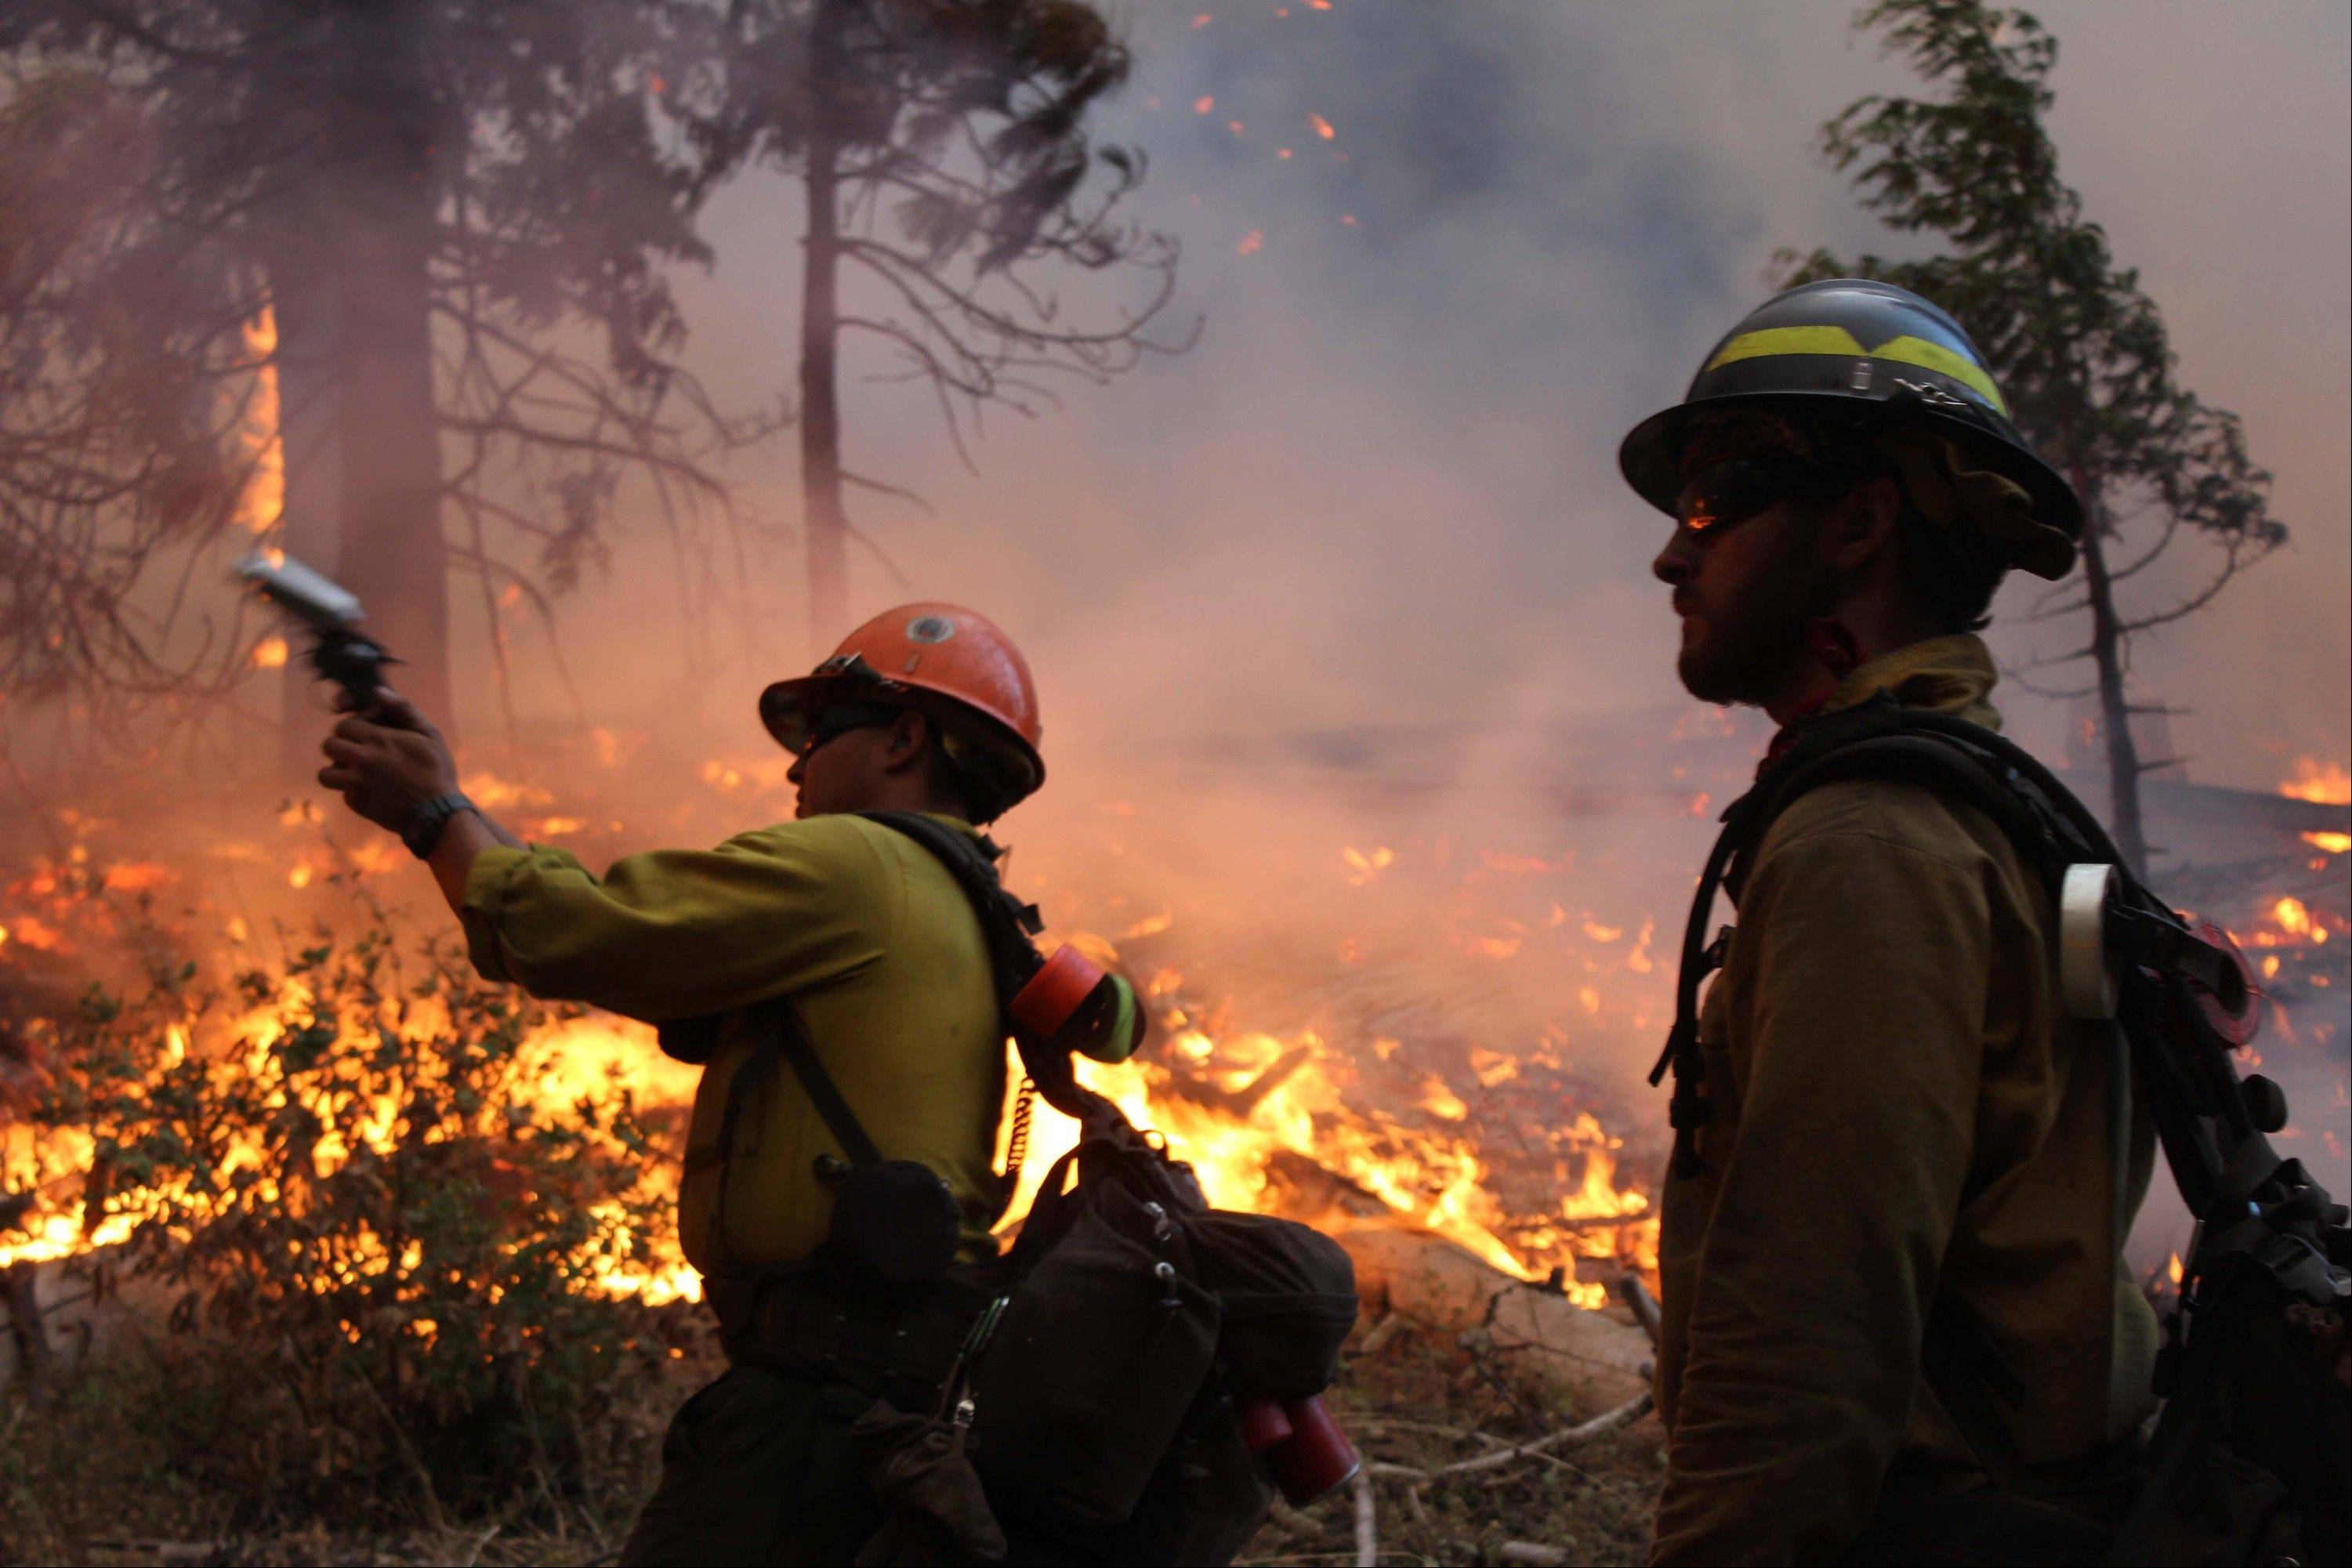 Associated Press/U.S. Forest Service Fire crew members stand watch near a controlled burn operation as they fight the Rim Fire Monday near Yosemite National Park in California.